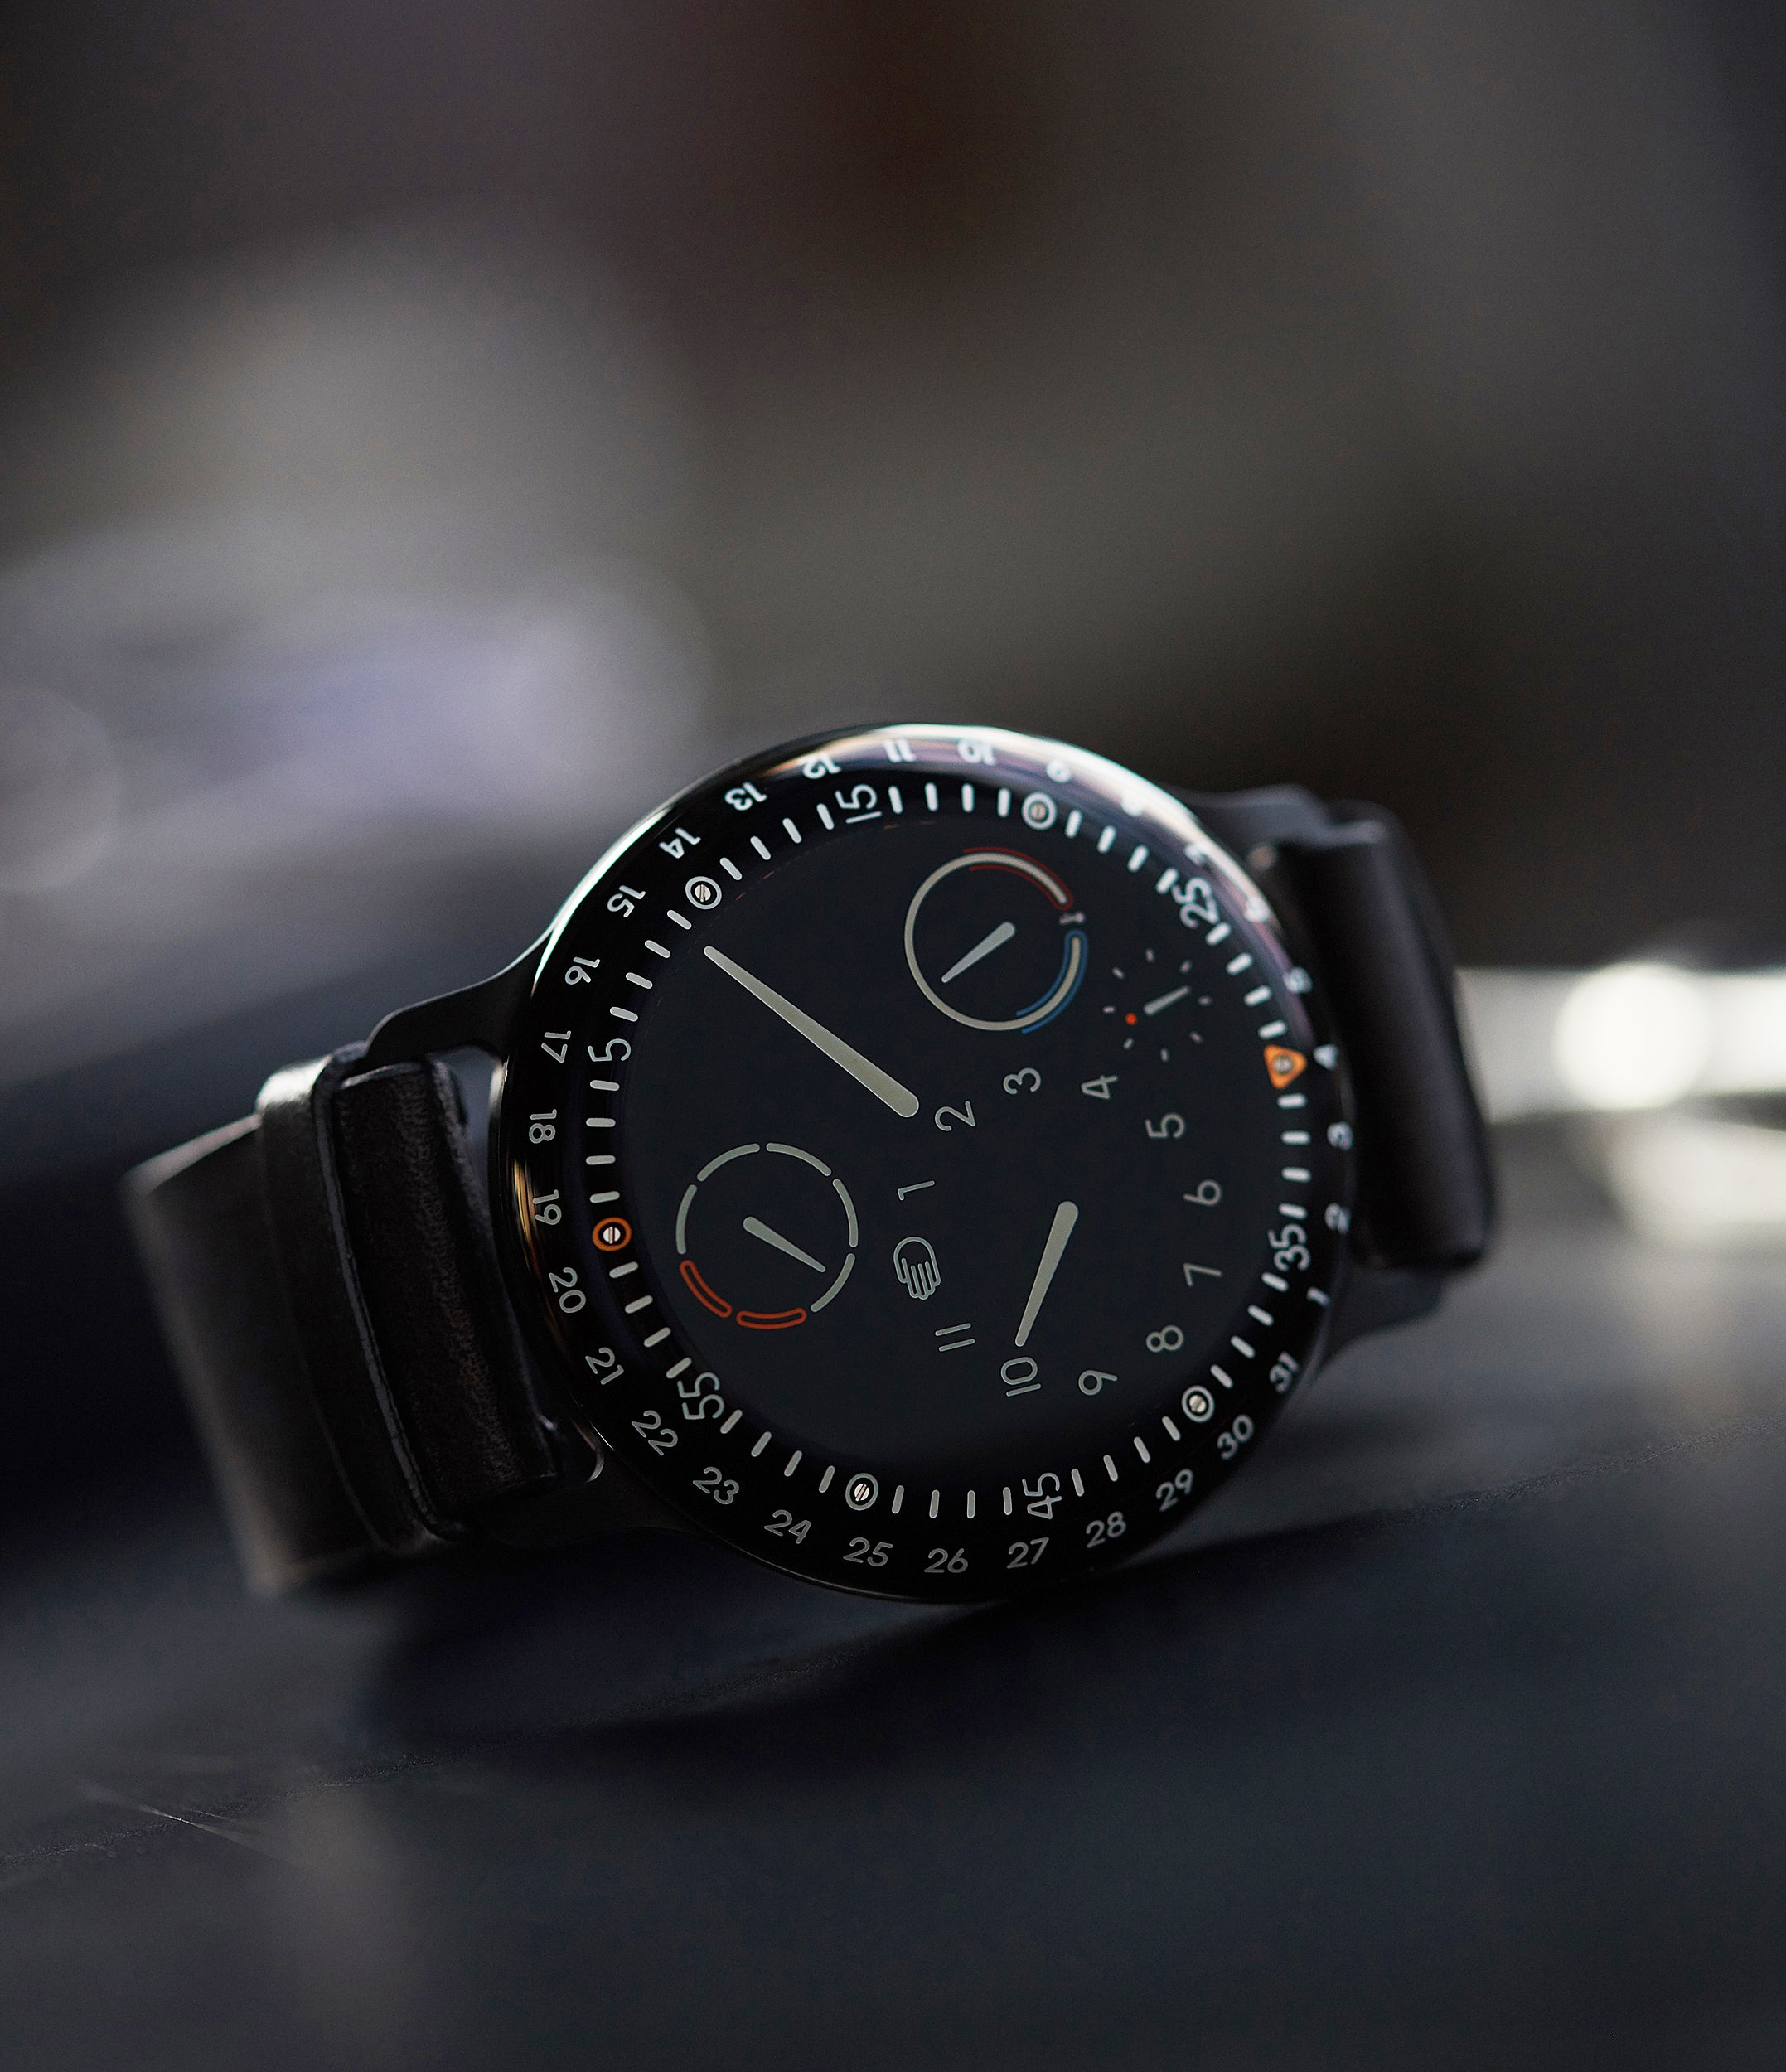 Shop latest Ressence watch Type 3 with distinctive orbital dial construct at A Collected Man London